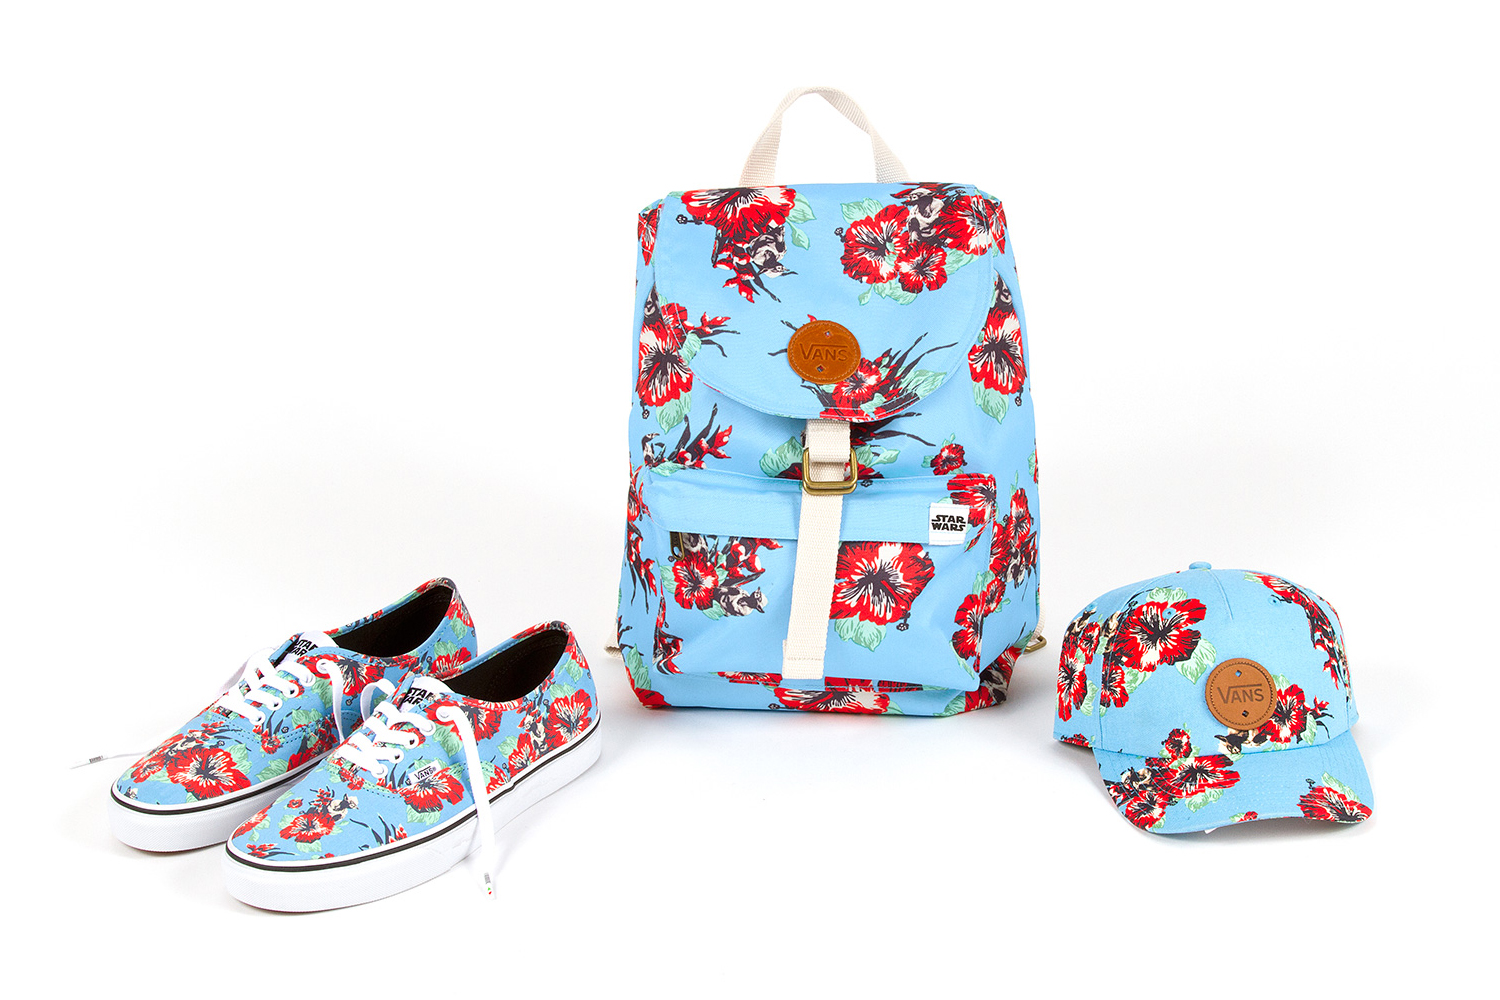 Vans-x-Star-Wars_-Yoda-Aloha-Accessories-Collection-2